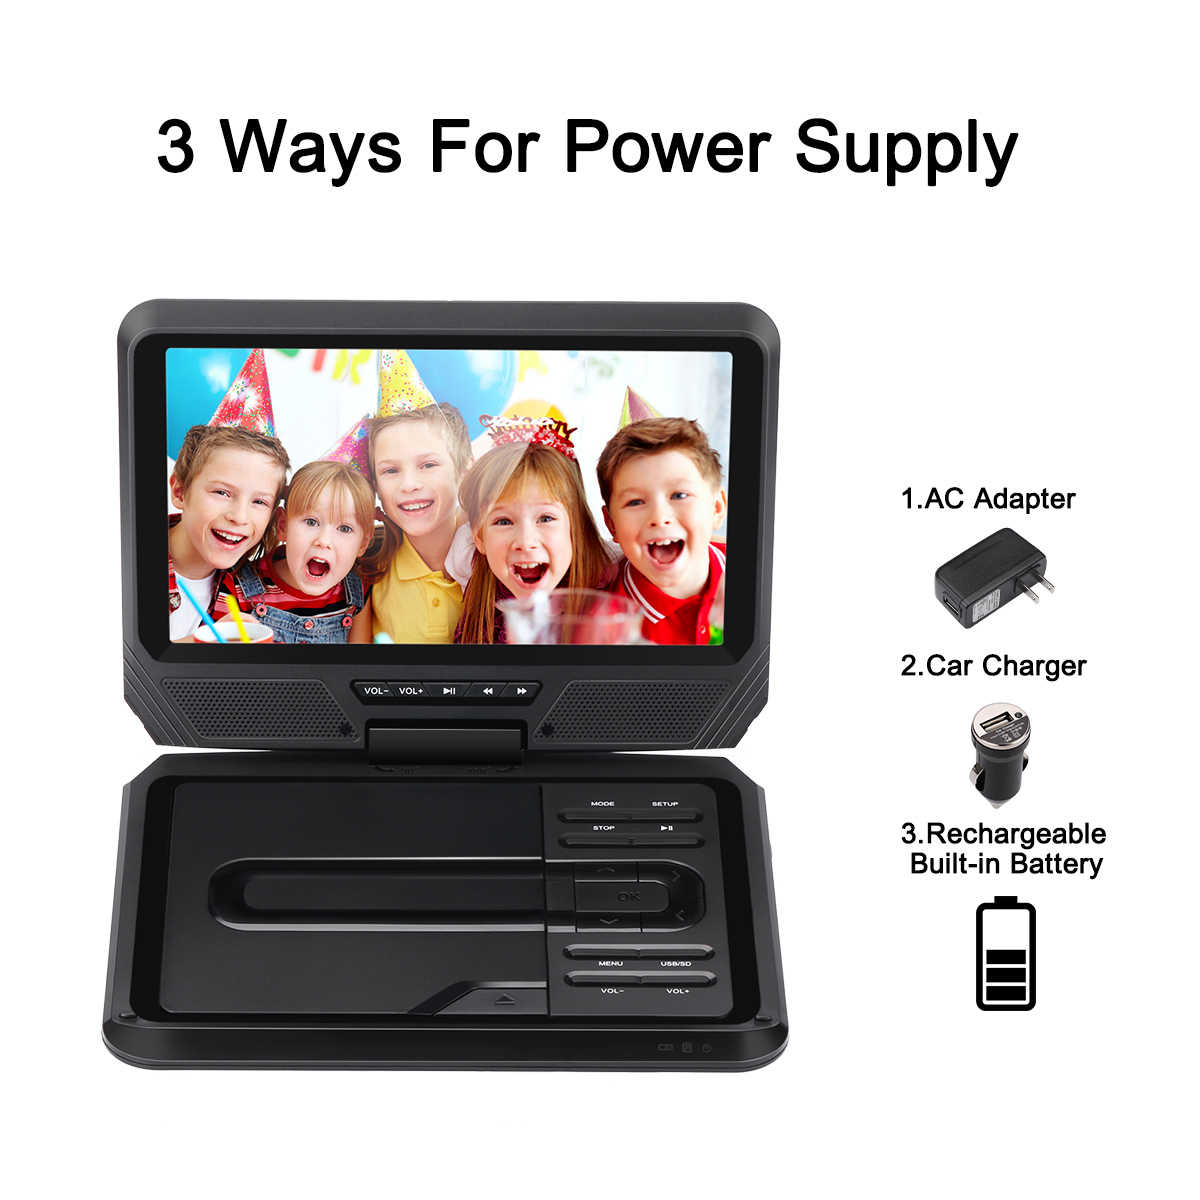 Excelvan 9' Portable DVD Player with Swivel Screen, Built-in Rechargeable Battery SD Card and USB Supported Direct Play in Formats AVI/RMVB/MP3/JPEG